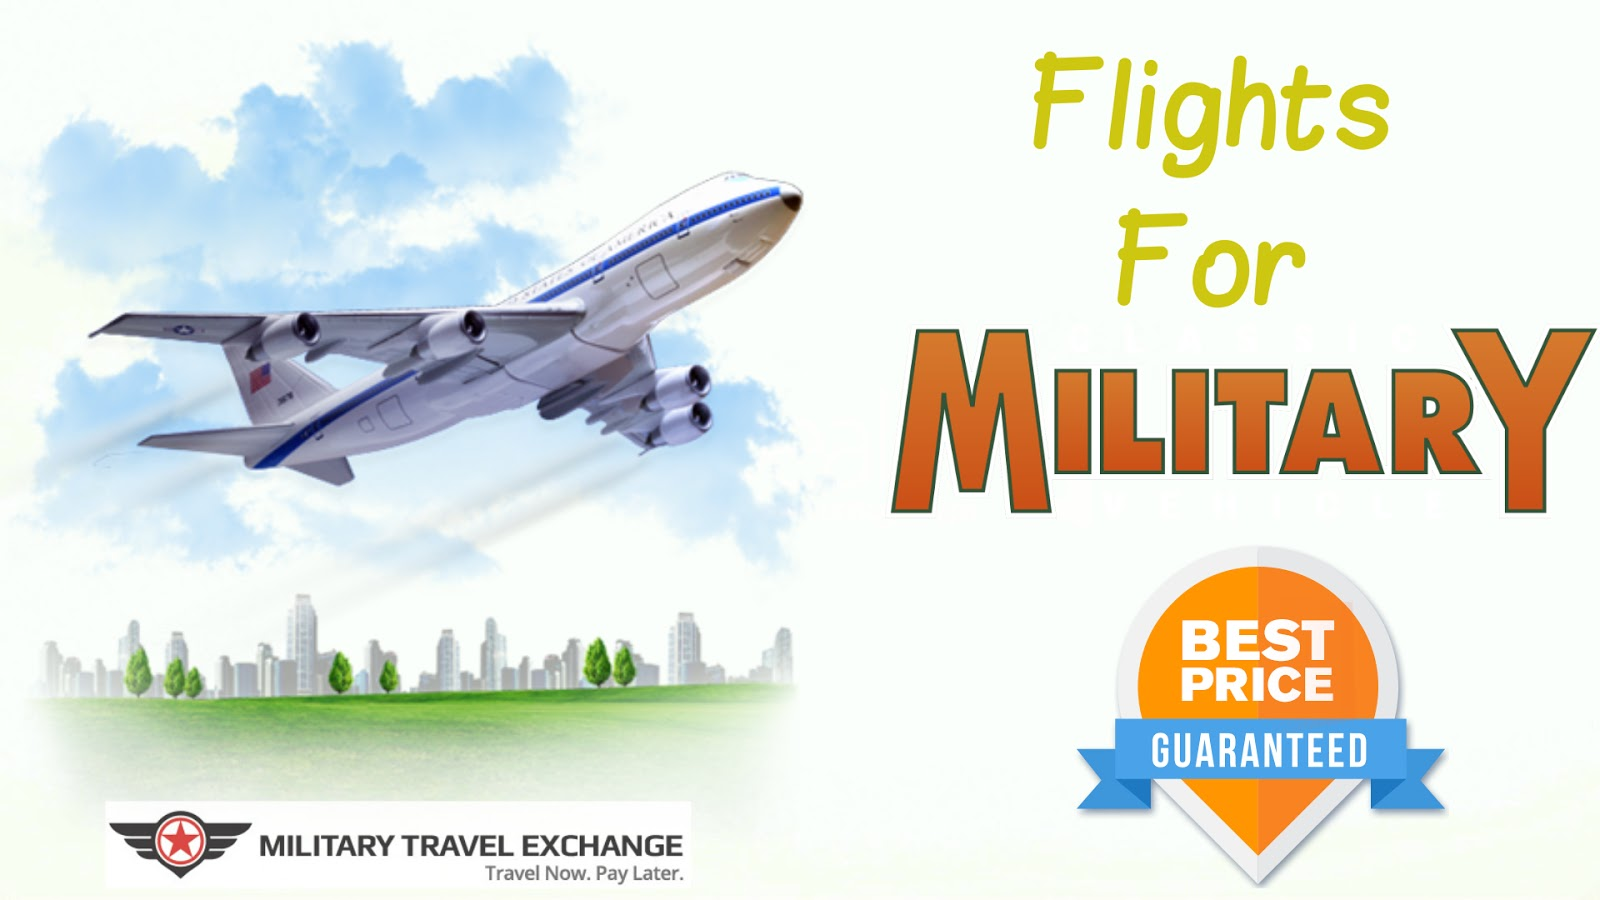 Military Travel Exchange  Lastminute Flights  Military. Cyber Schools In Michigan Client File Sharing. Which Bread Grows Mold The Fastest. Corporate Team Building Sydney. Melbourne Storage Facilities. Summer Research Programs Michael Wax Attorney. Content Delivery Network Amazon. Smtp Server For Testing Measure Film Thickness. McKinney Security Systems Colgate Gum Disease